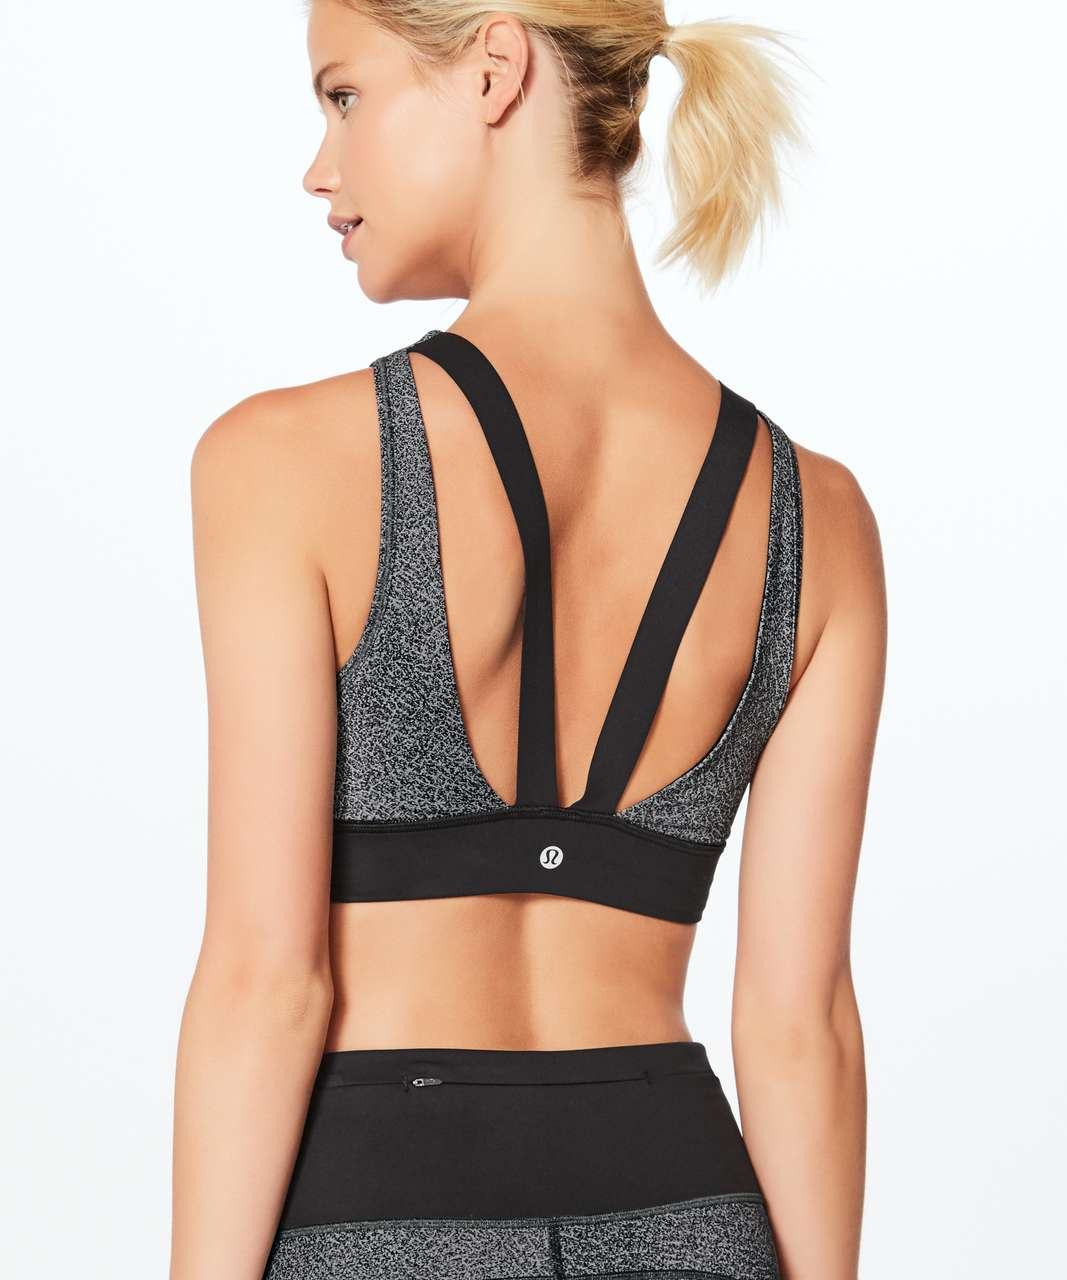 5b4f0b9658 Lululemon Run The Day Bra - Fractal Dark Starlight Black   Black - lulu  fanatics